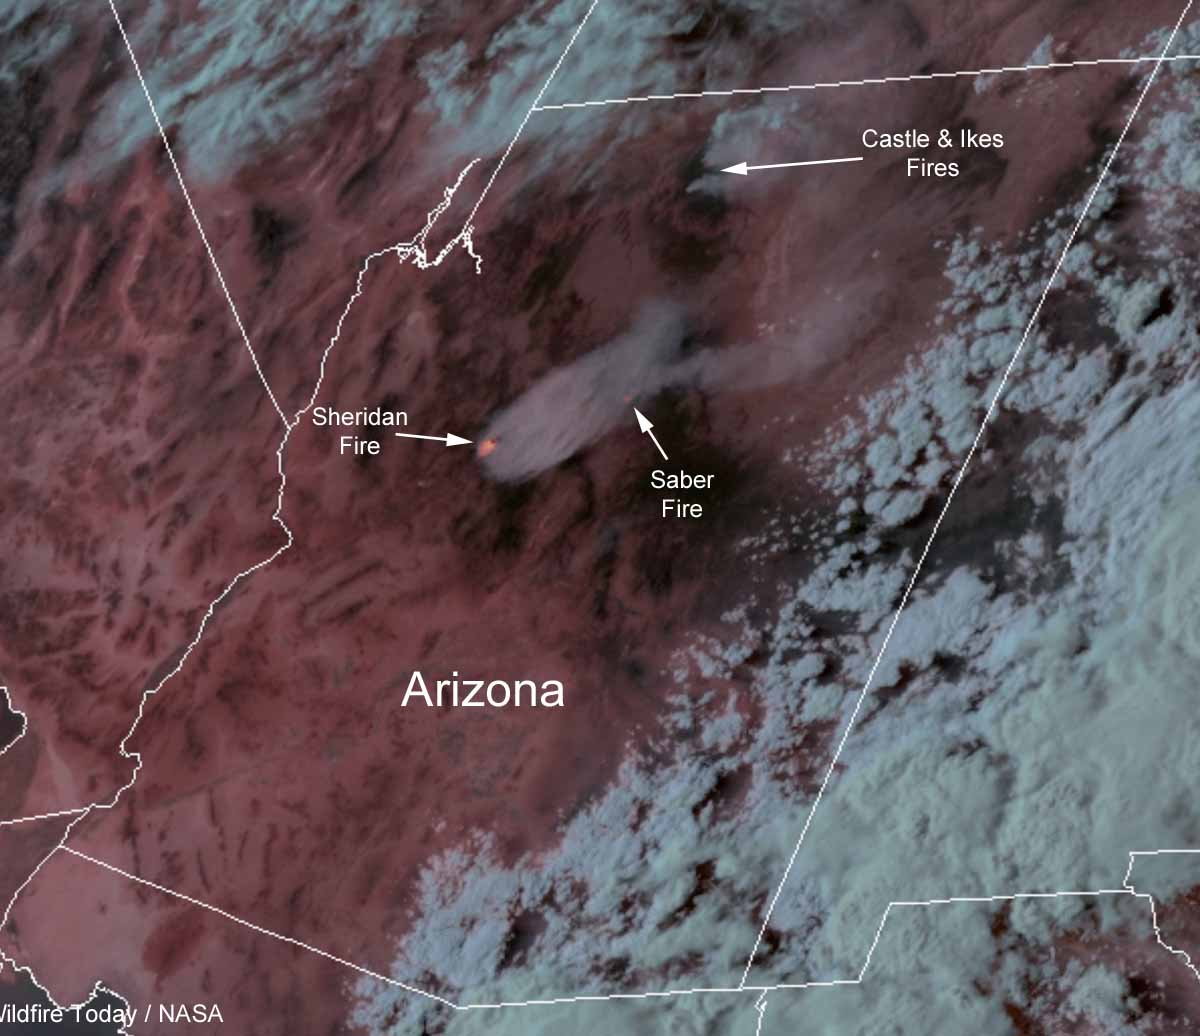 maplocation of wildfires Arizona Sheridan Saber wildfires